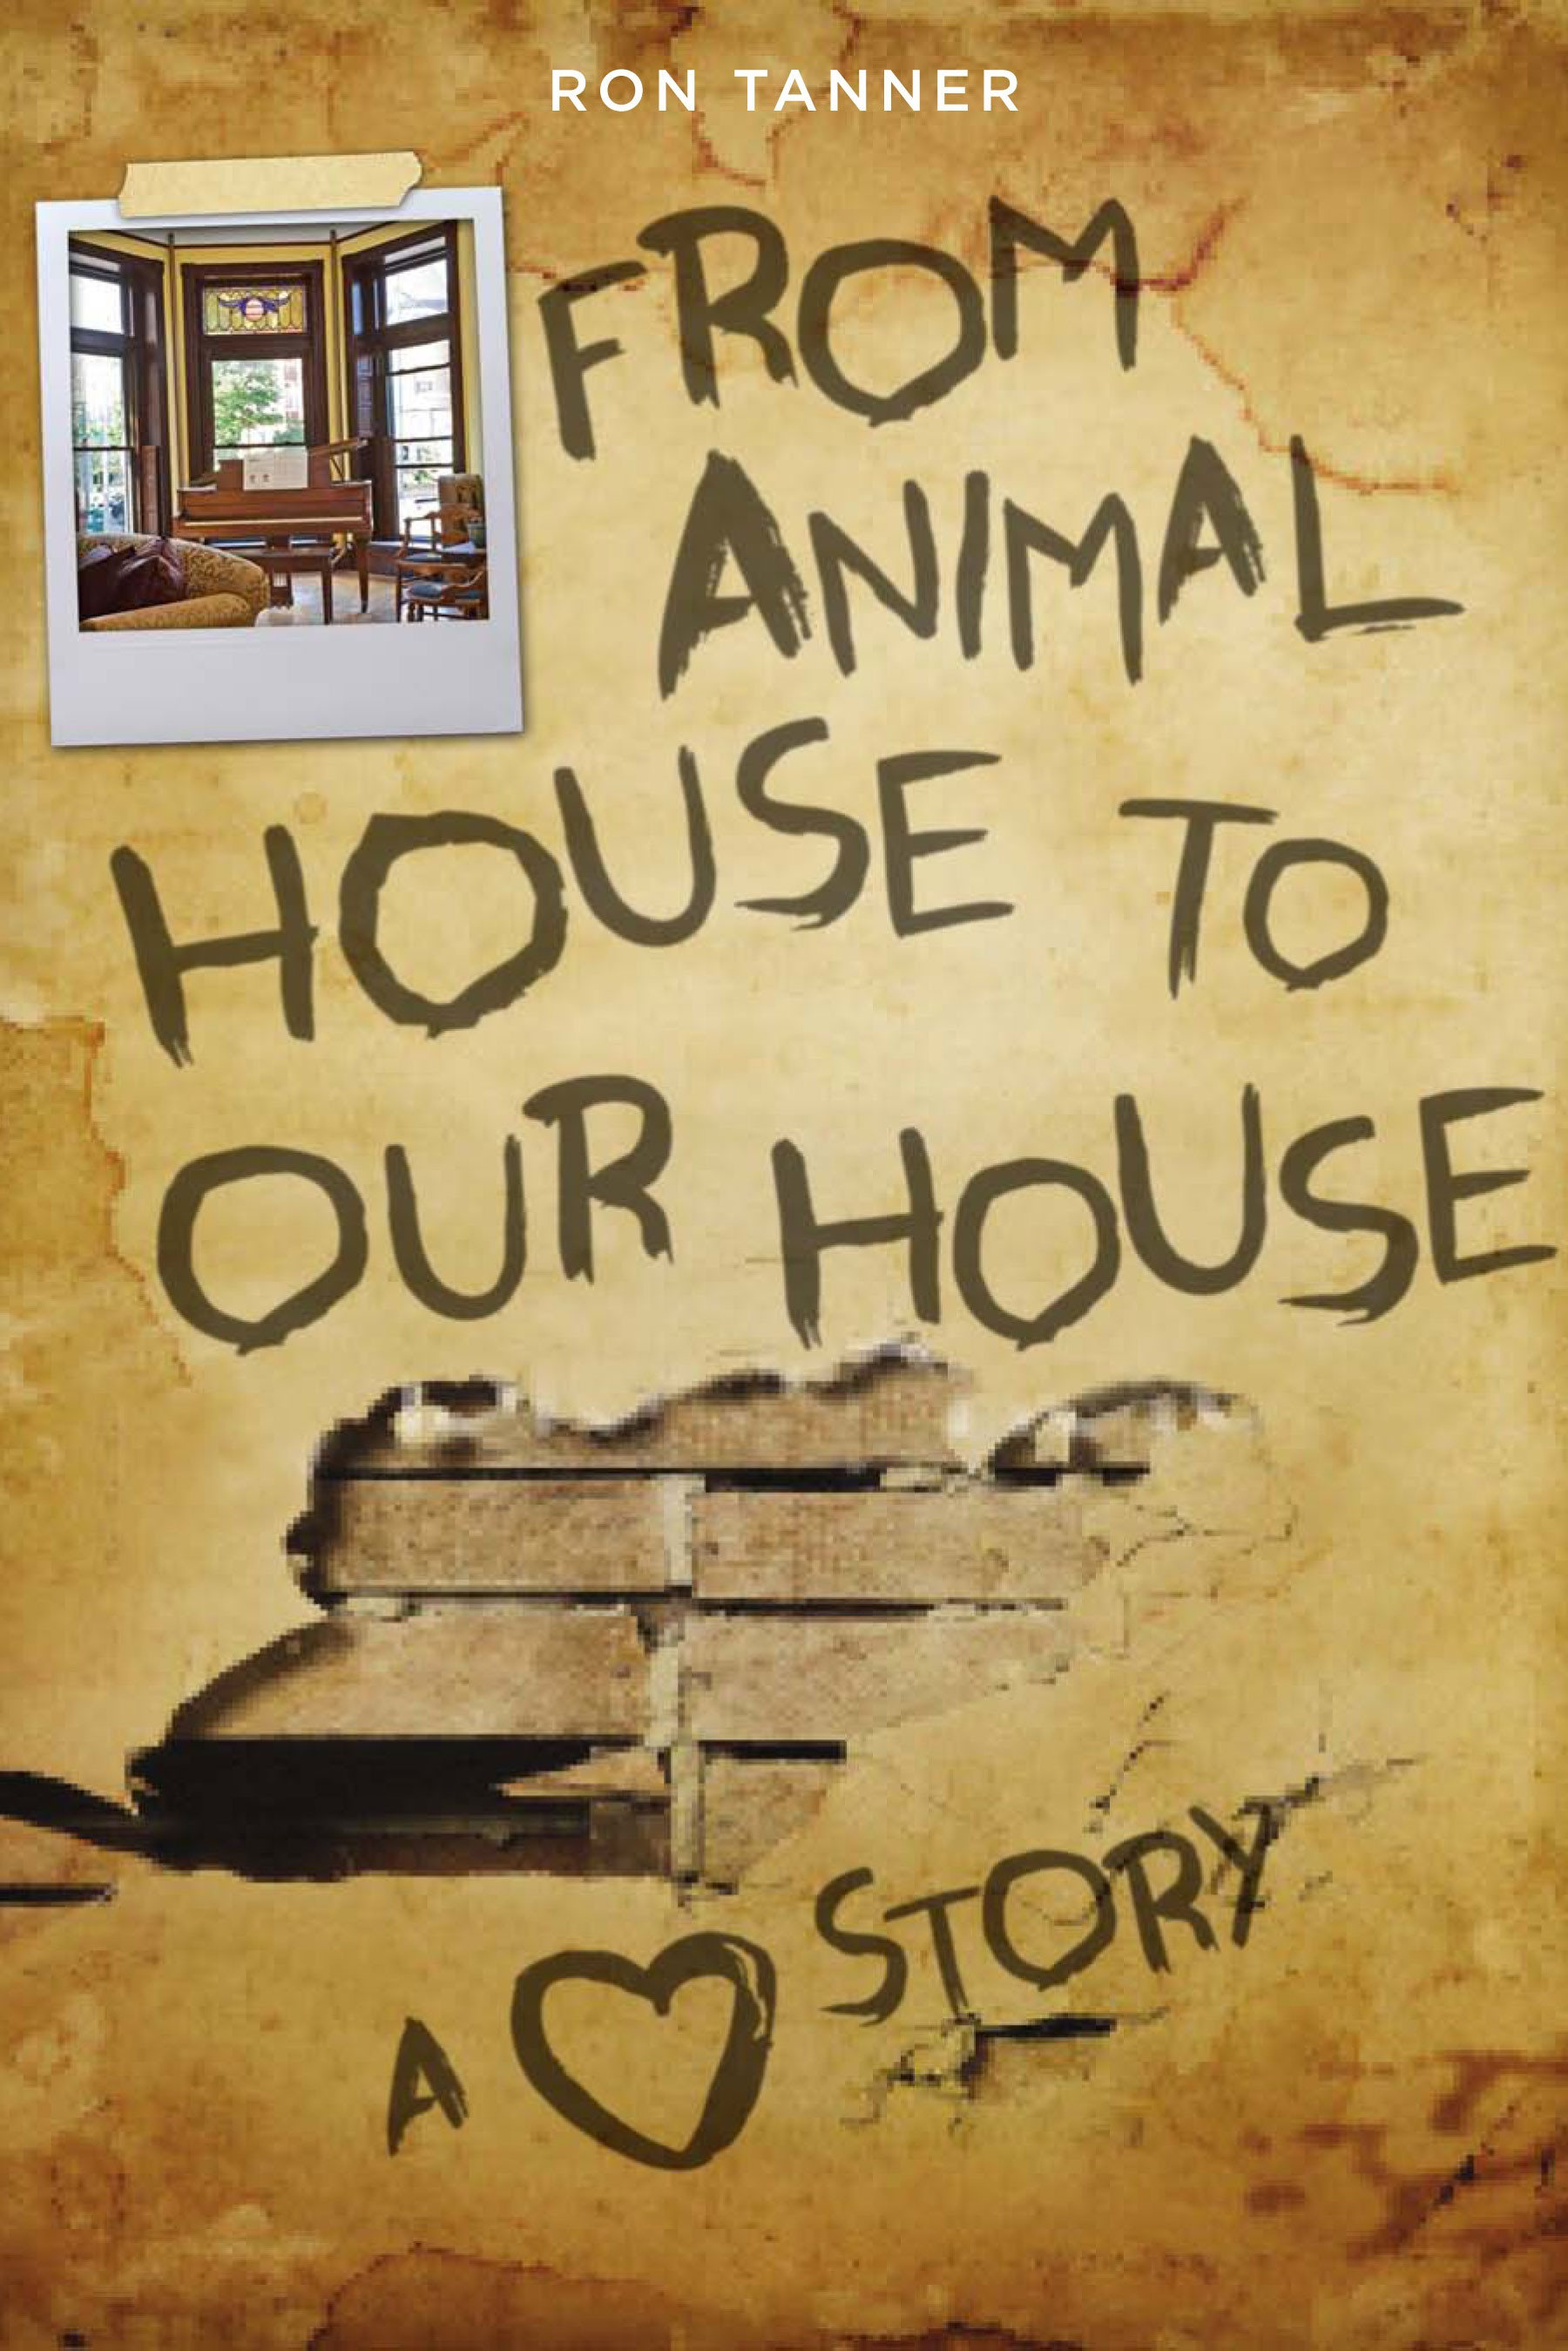 From Animal House To Our House: A Love Story - BY RON TANNER